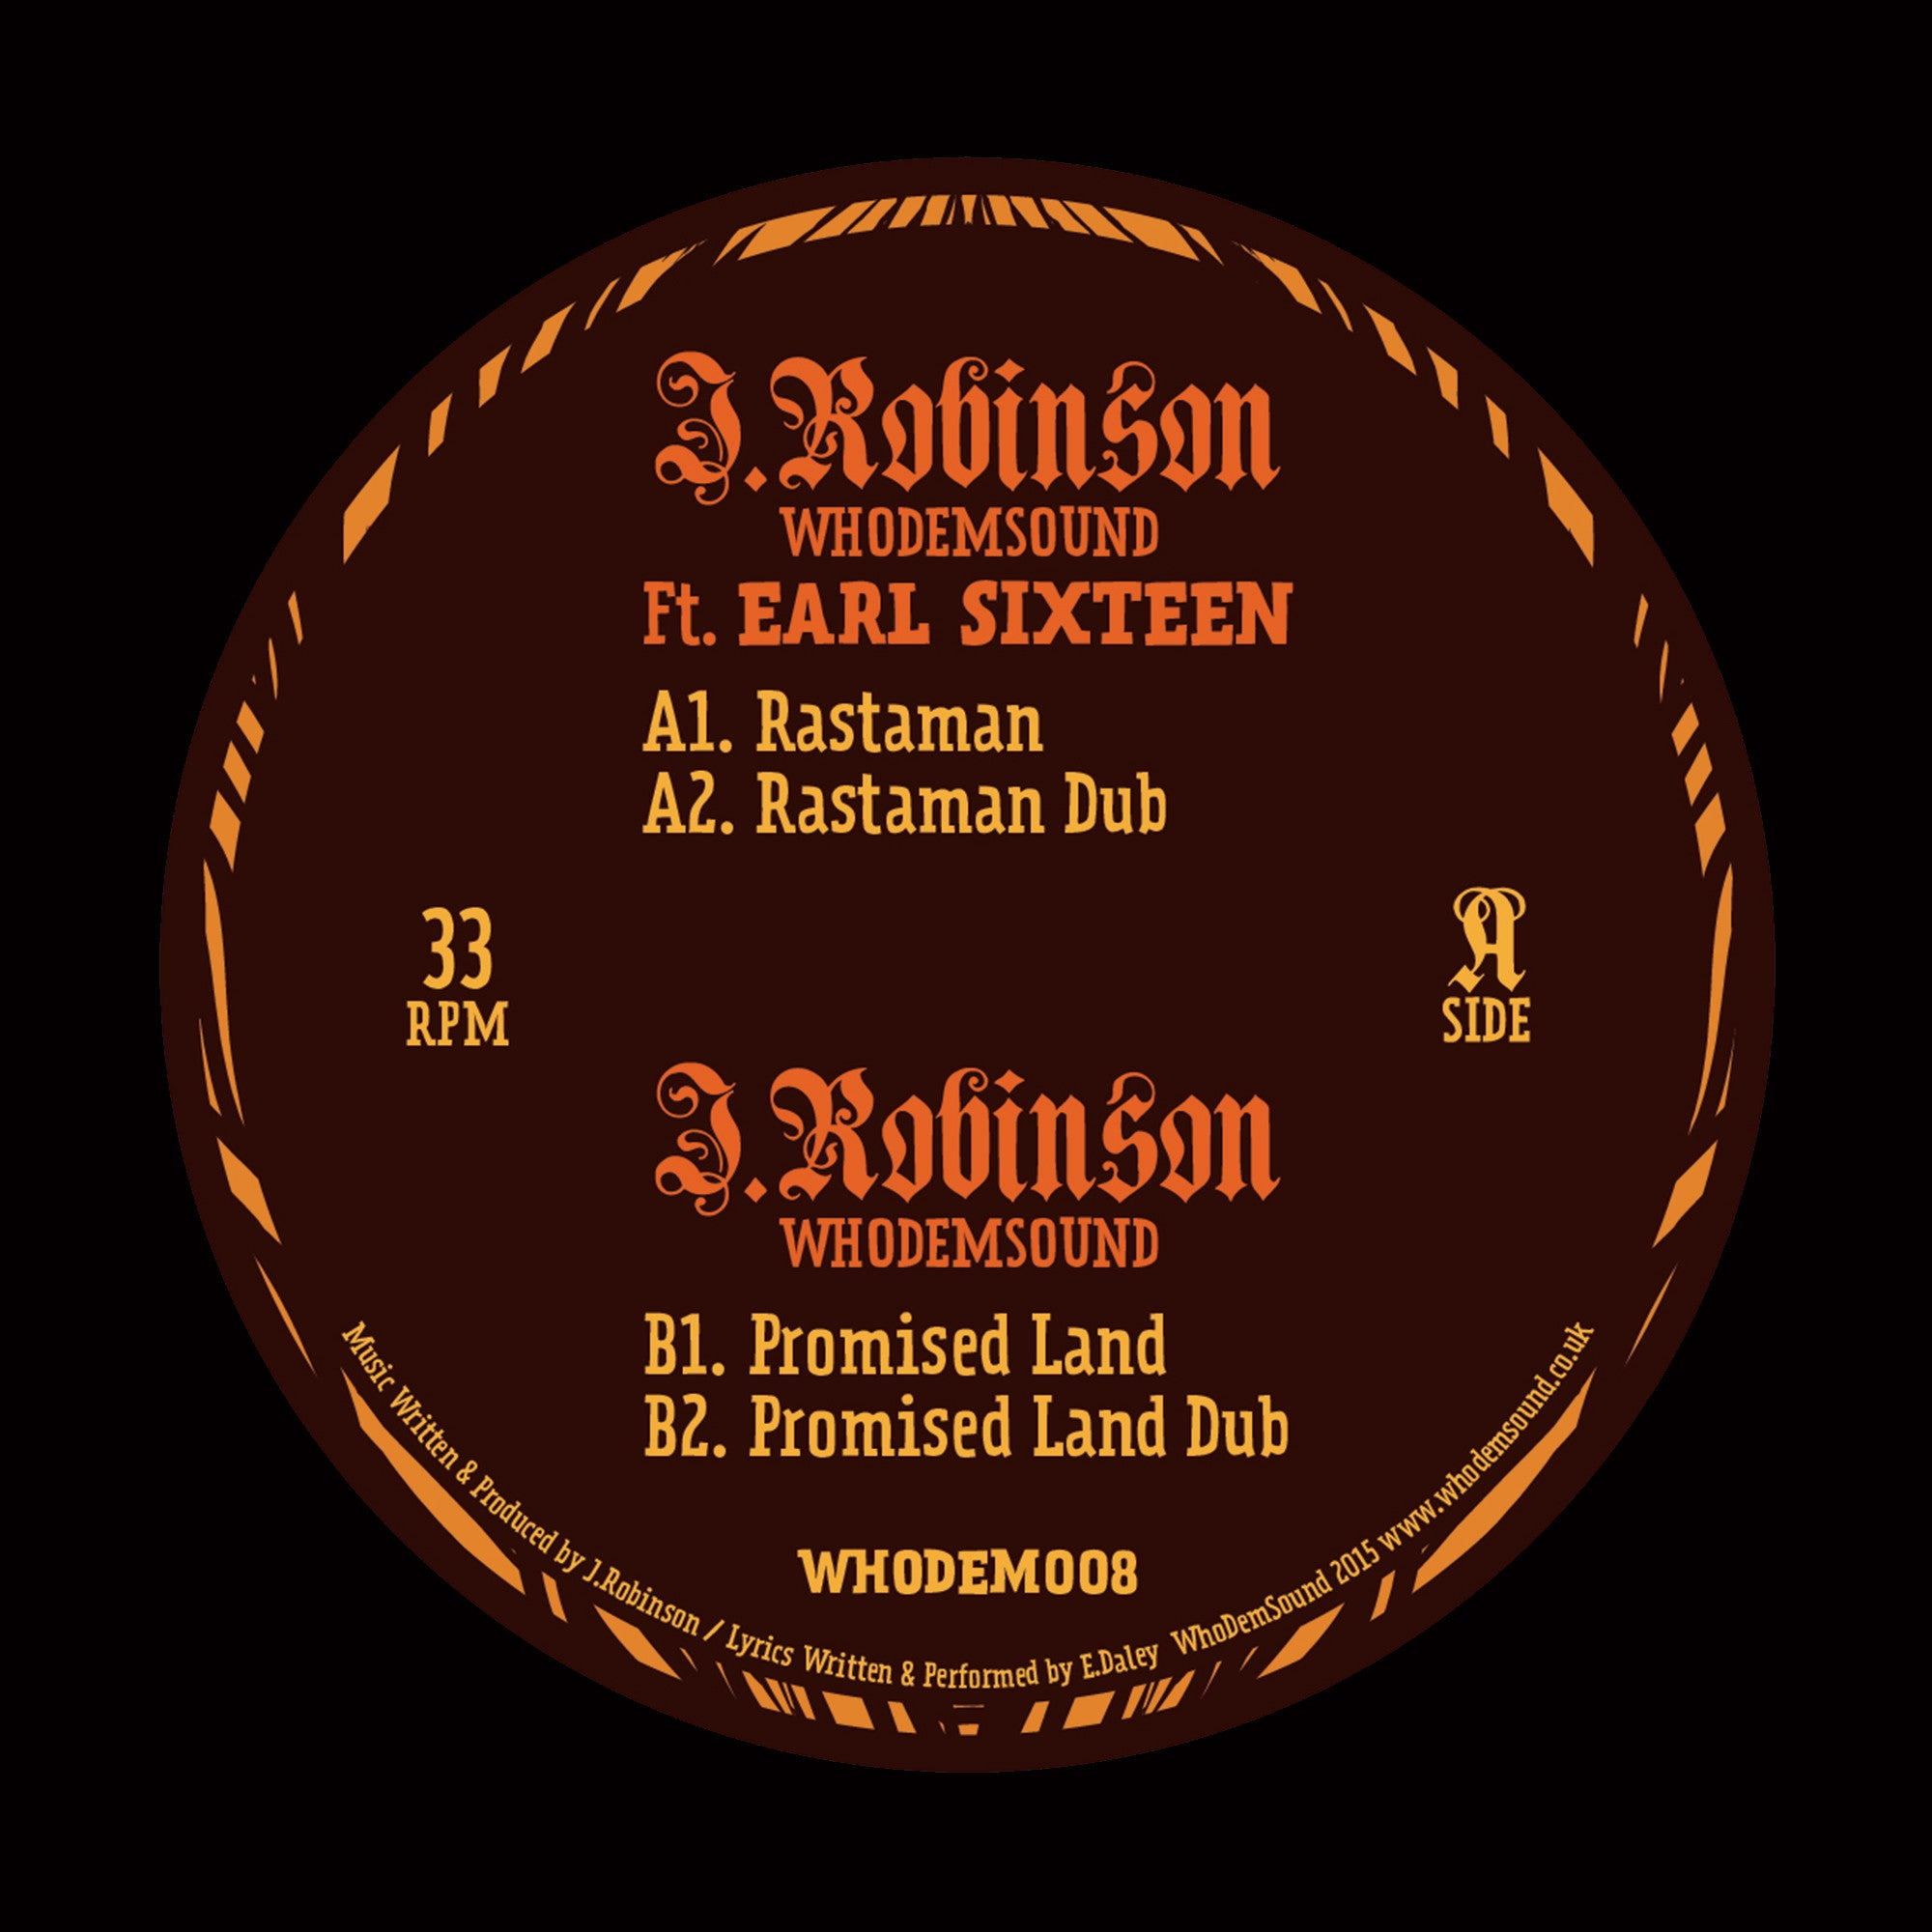 "J.Robinson WhoDemSound (ft. Earl 16) - Rastaman [180g 12"" Vinyl] - Unearthed Sounds"